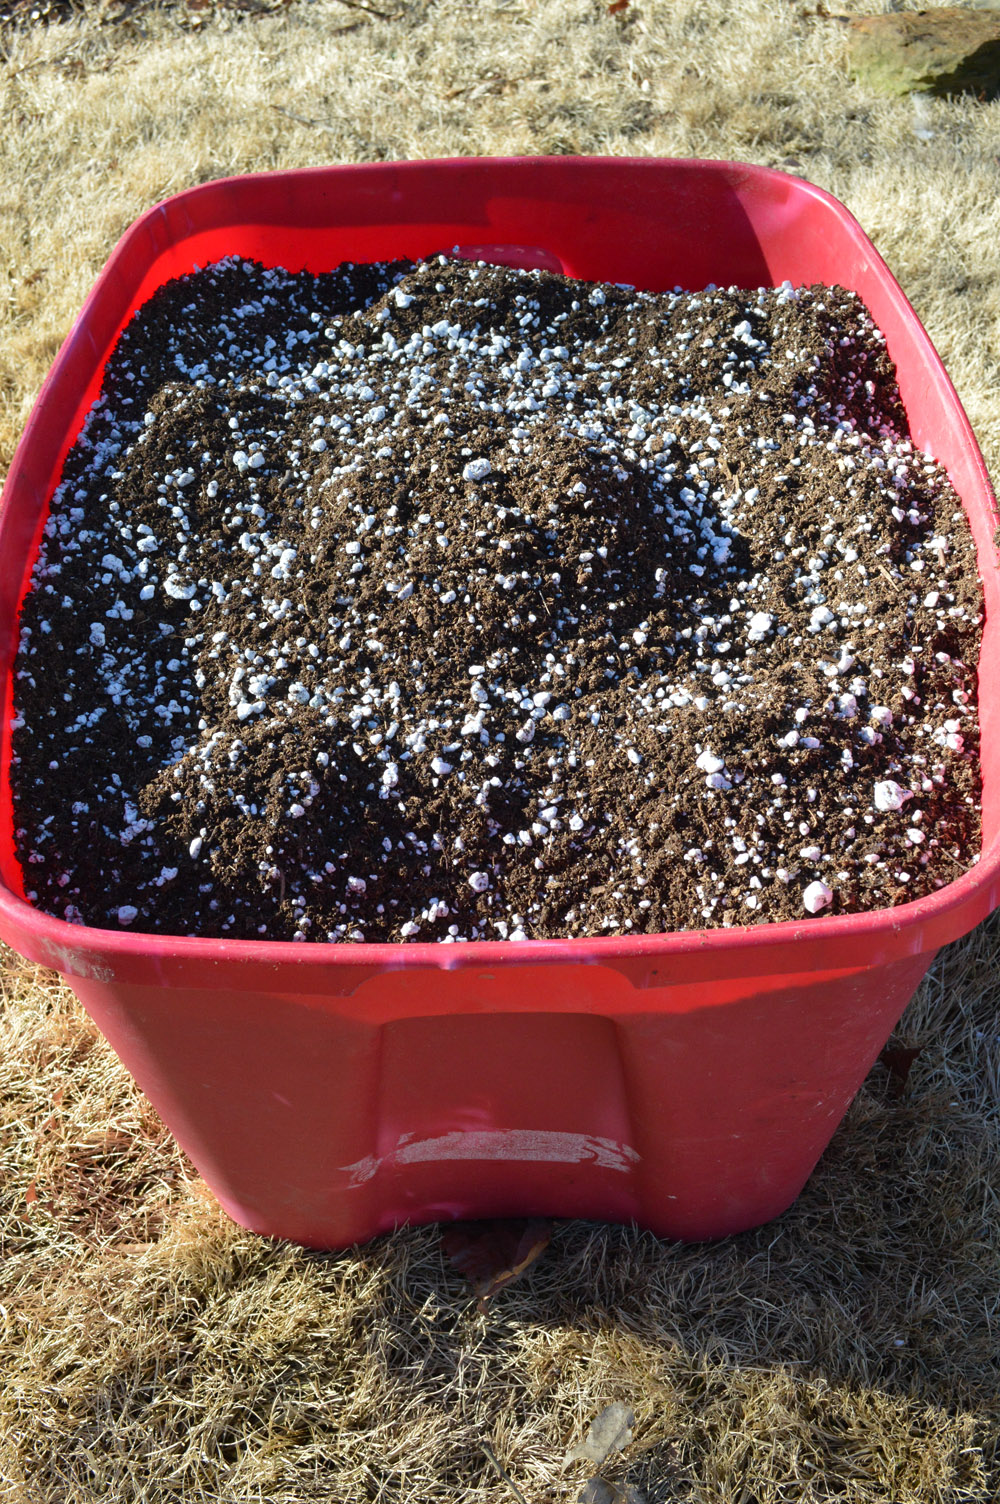 92e19-seedlingmixinbucket.jpg